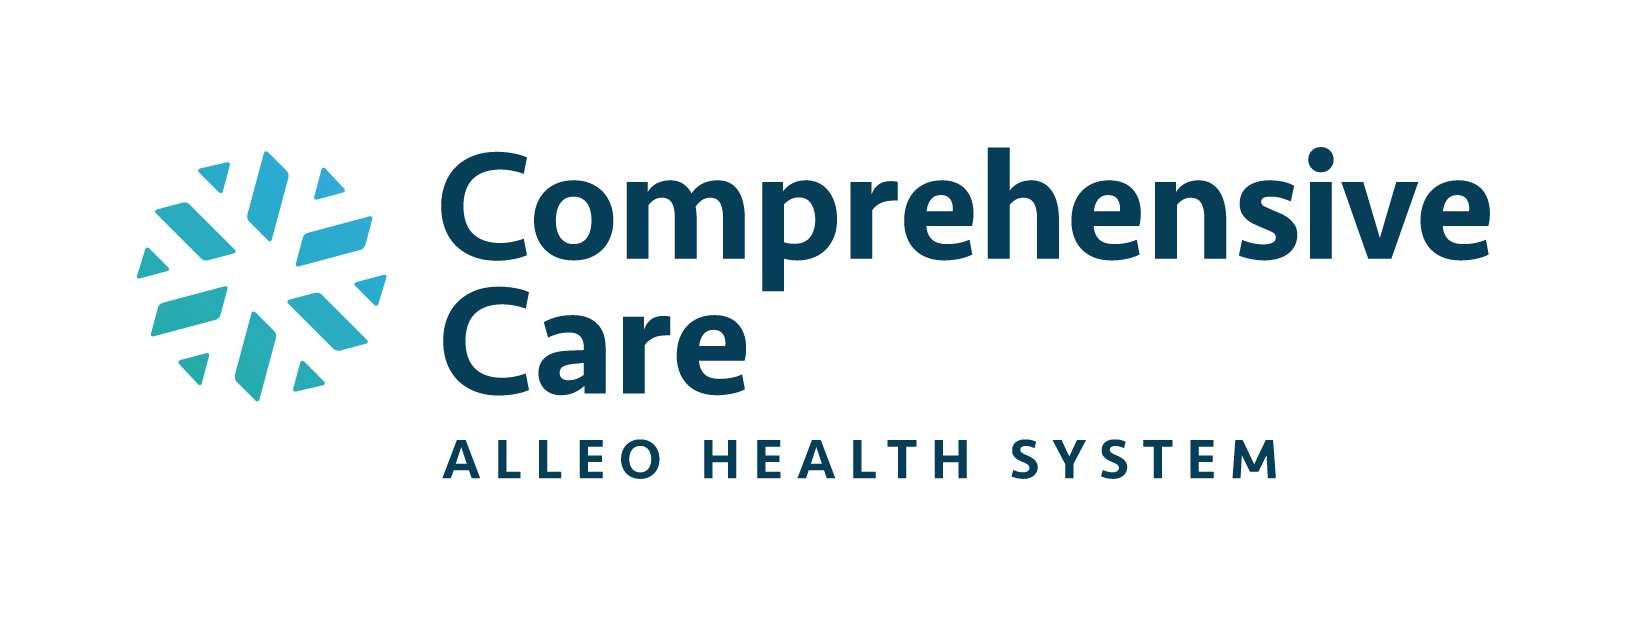 Comprehensive Care - Comprehensive Care are your experts in care solutions. Our services focus on providing non-medical assistance to family members who need help with the activities of everyday living while enjoying the comfort and familiarity of living at home, or in partnership with a host of healthcare providers.ComprehensiveCare.net